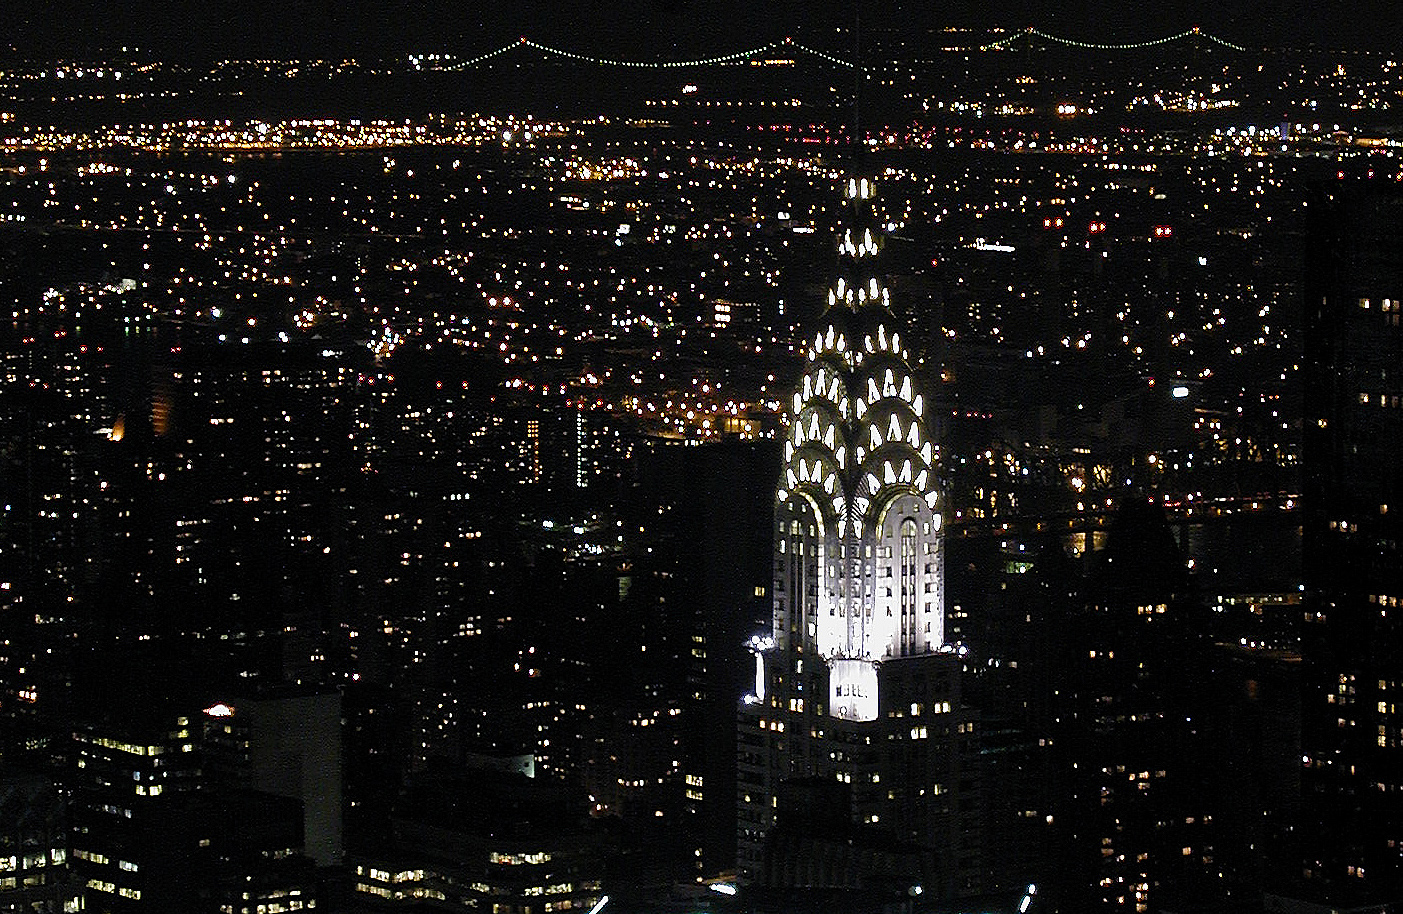 Chrysler Building at night, photo: Kim Carpenter, CC: BY 2.0